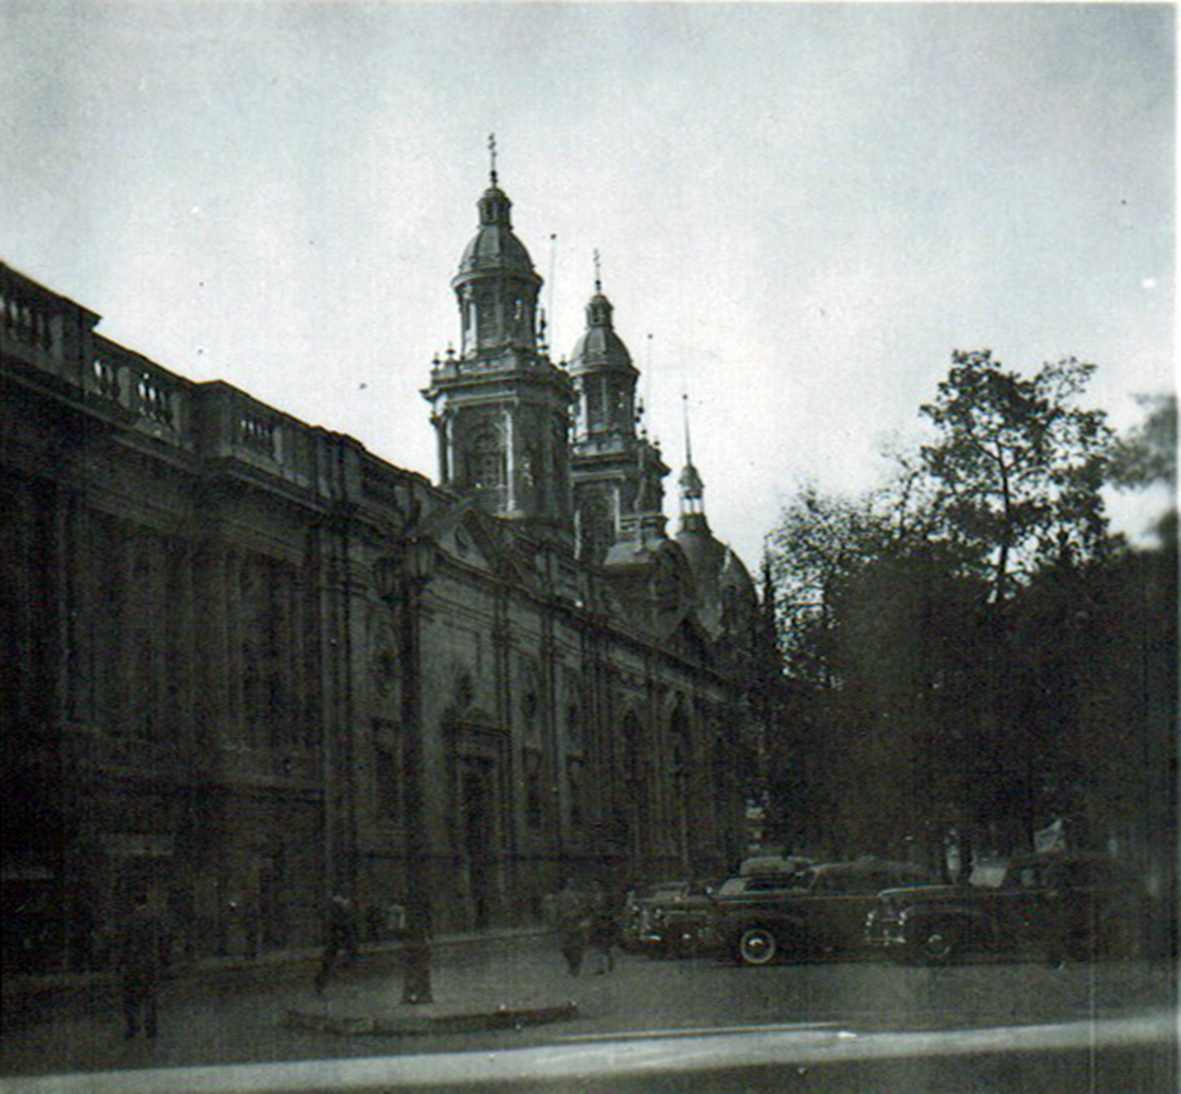 Enterreno - Fotos históricas de chile - fotos antiguas de Chile - Catedral de Santiago en 1945